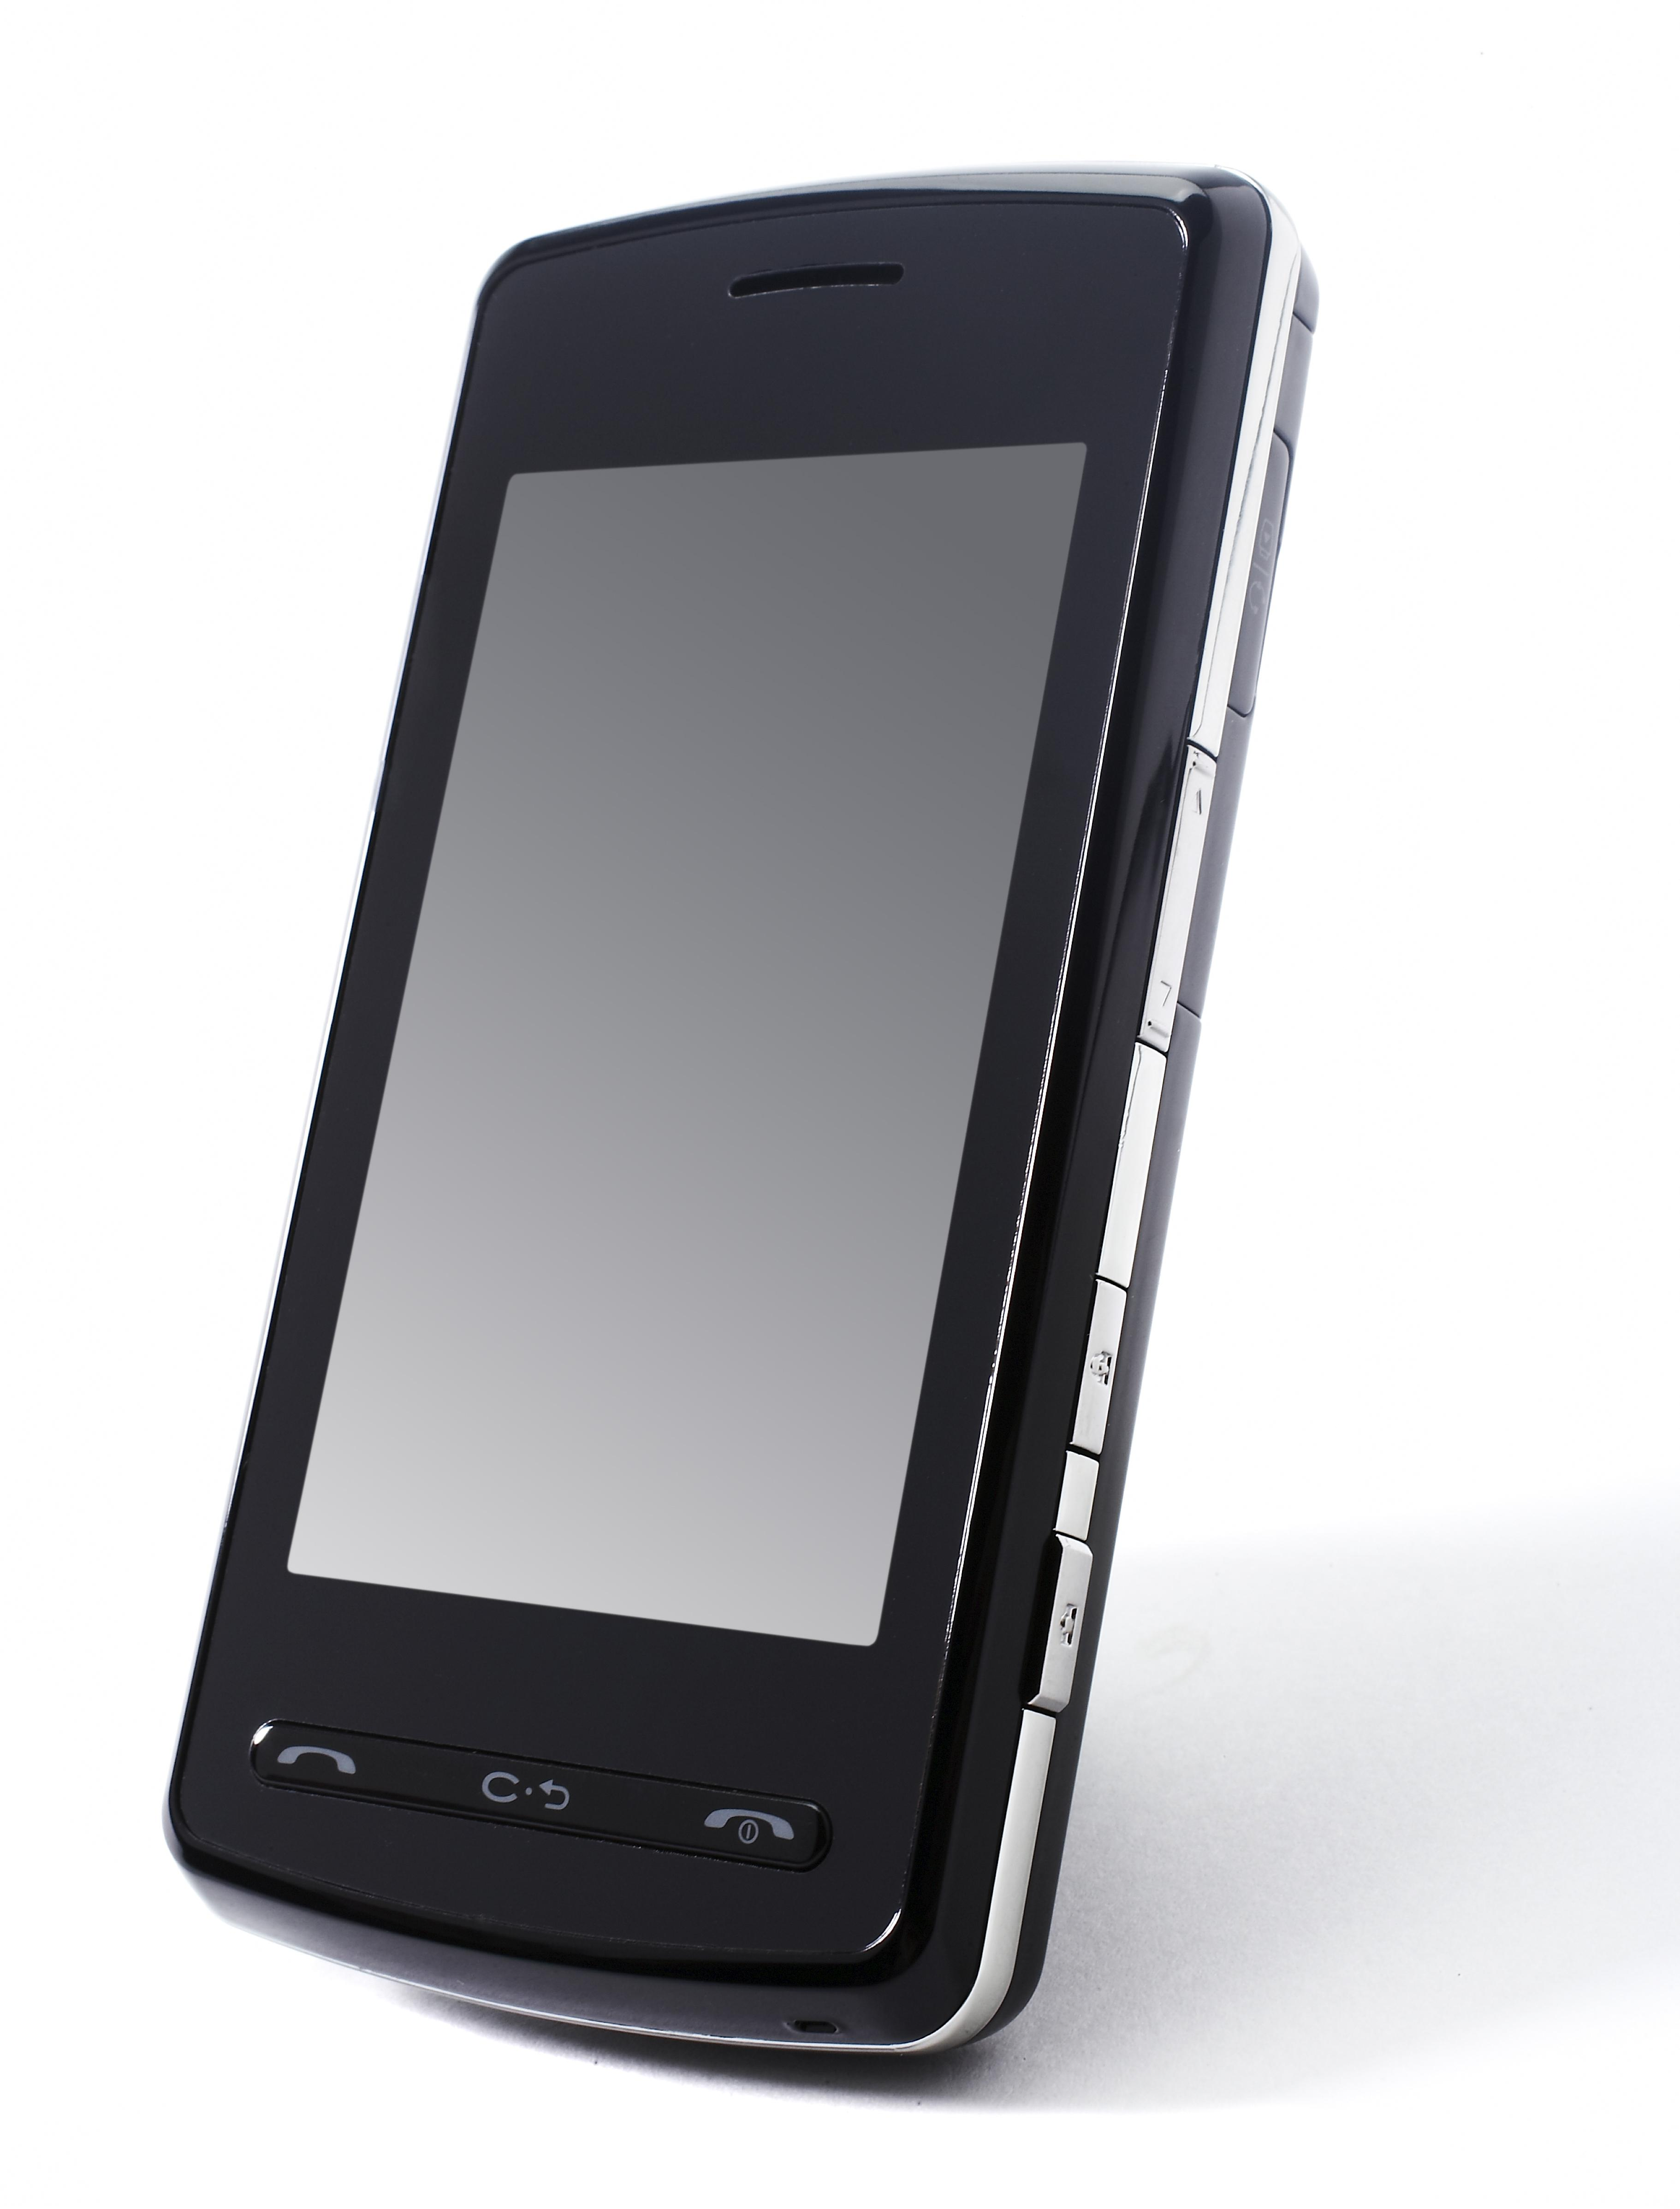 touch screen phone